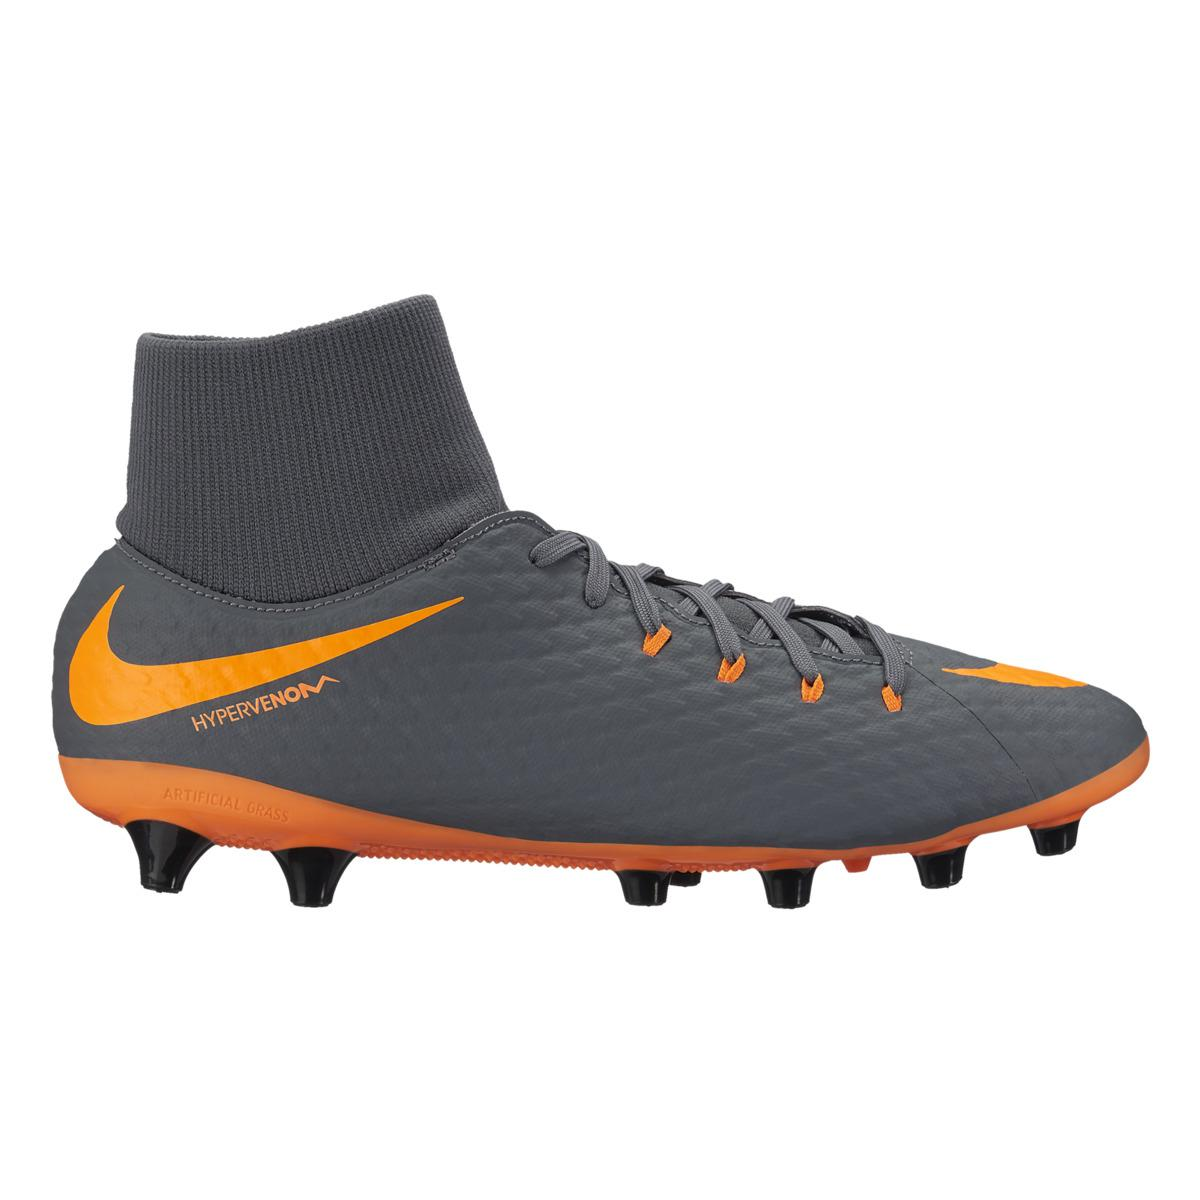 07ff80d5dea1 Nike Hypervenom Phantom 3 Academy Dynamic Fit (ag-pro) Football ...